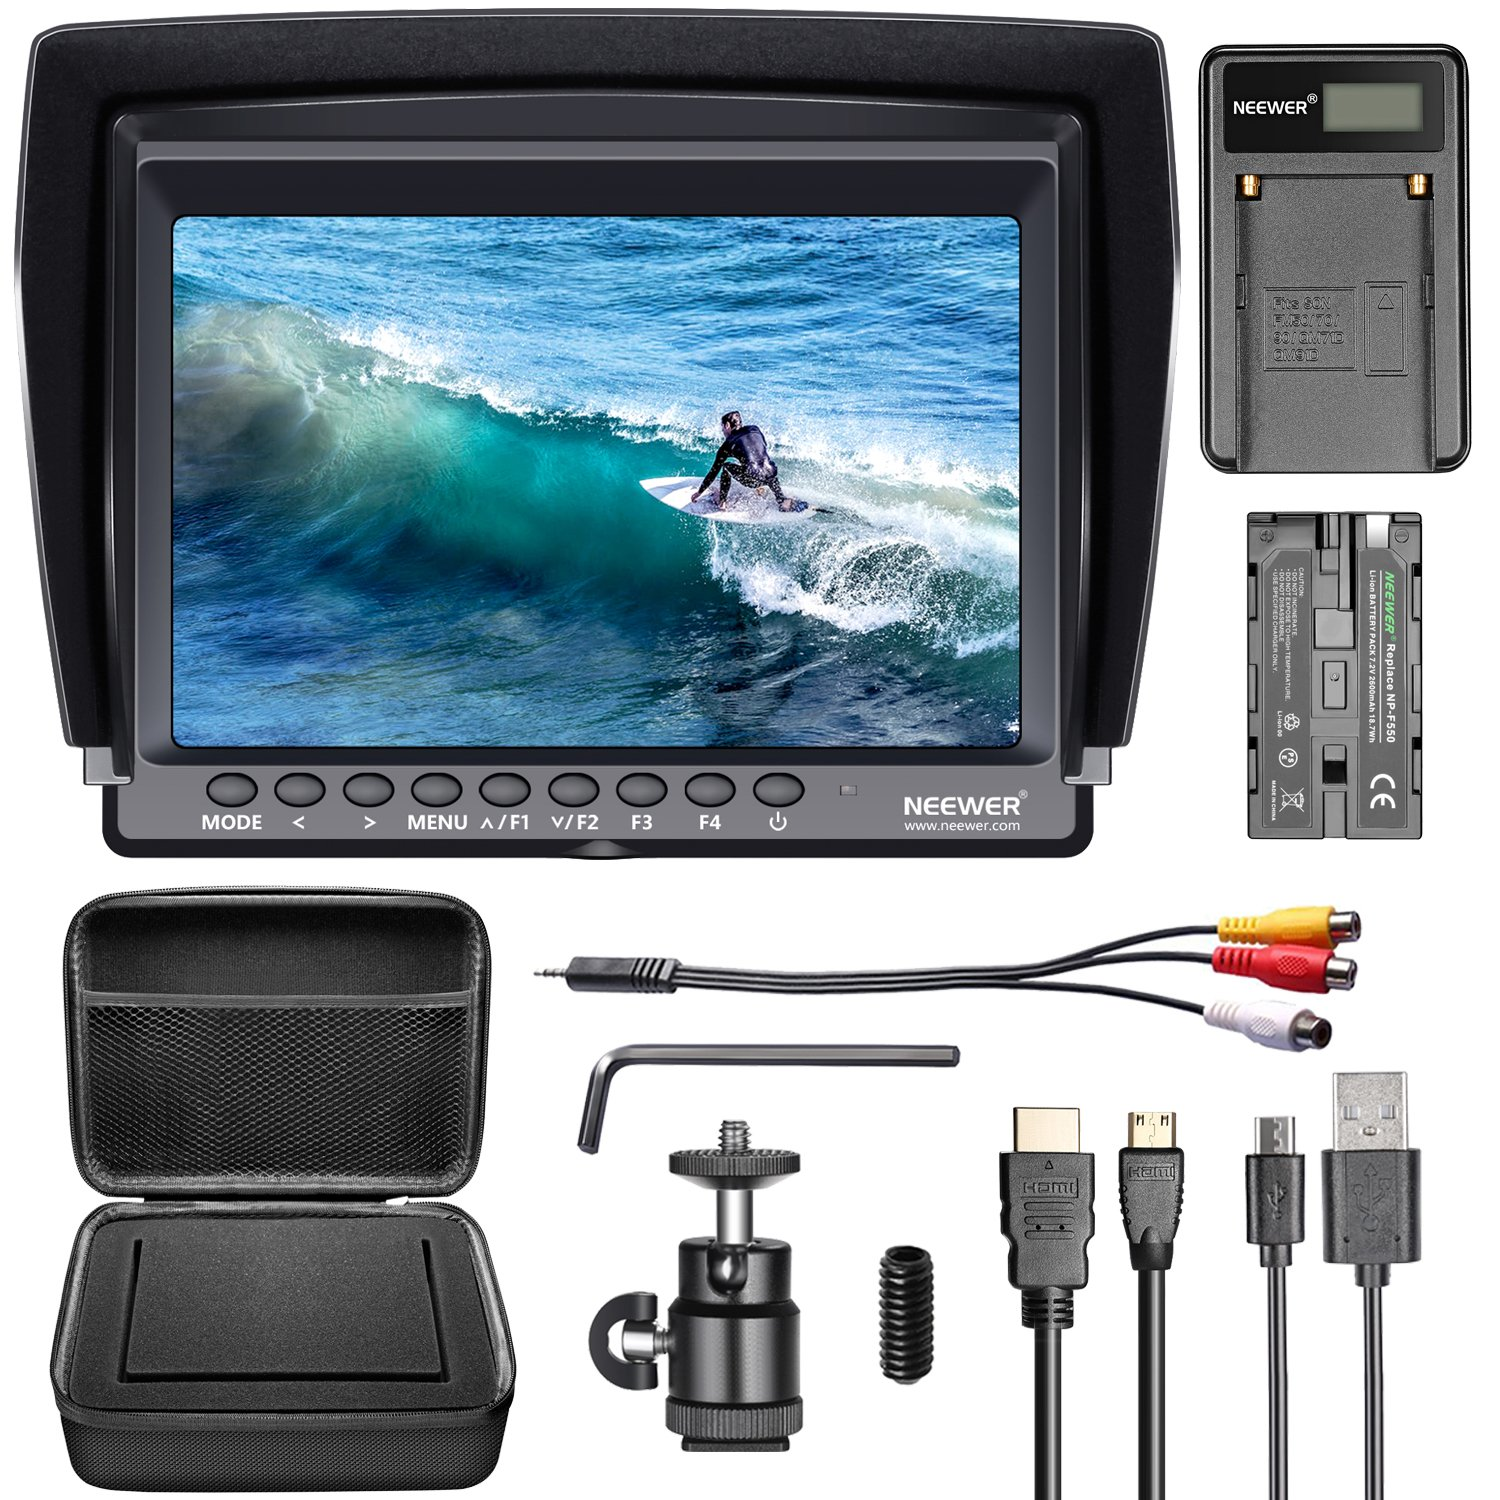 Neewer F100 7-inch 1280x800 IPS Screen Camera Field Monitor Kit with 2600mAh NP-F550 Replacement Li-ion Battery; Micro USB Battery Charger and Black Carrying Case for Nikon Canon Sony DSLR Cameras 90092459